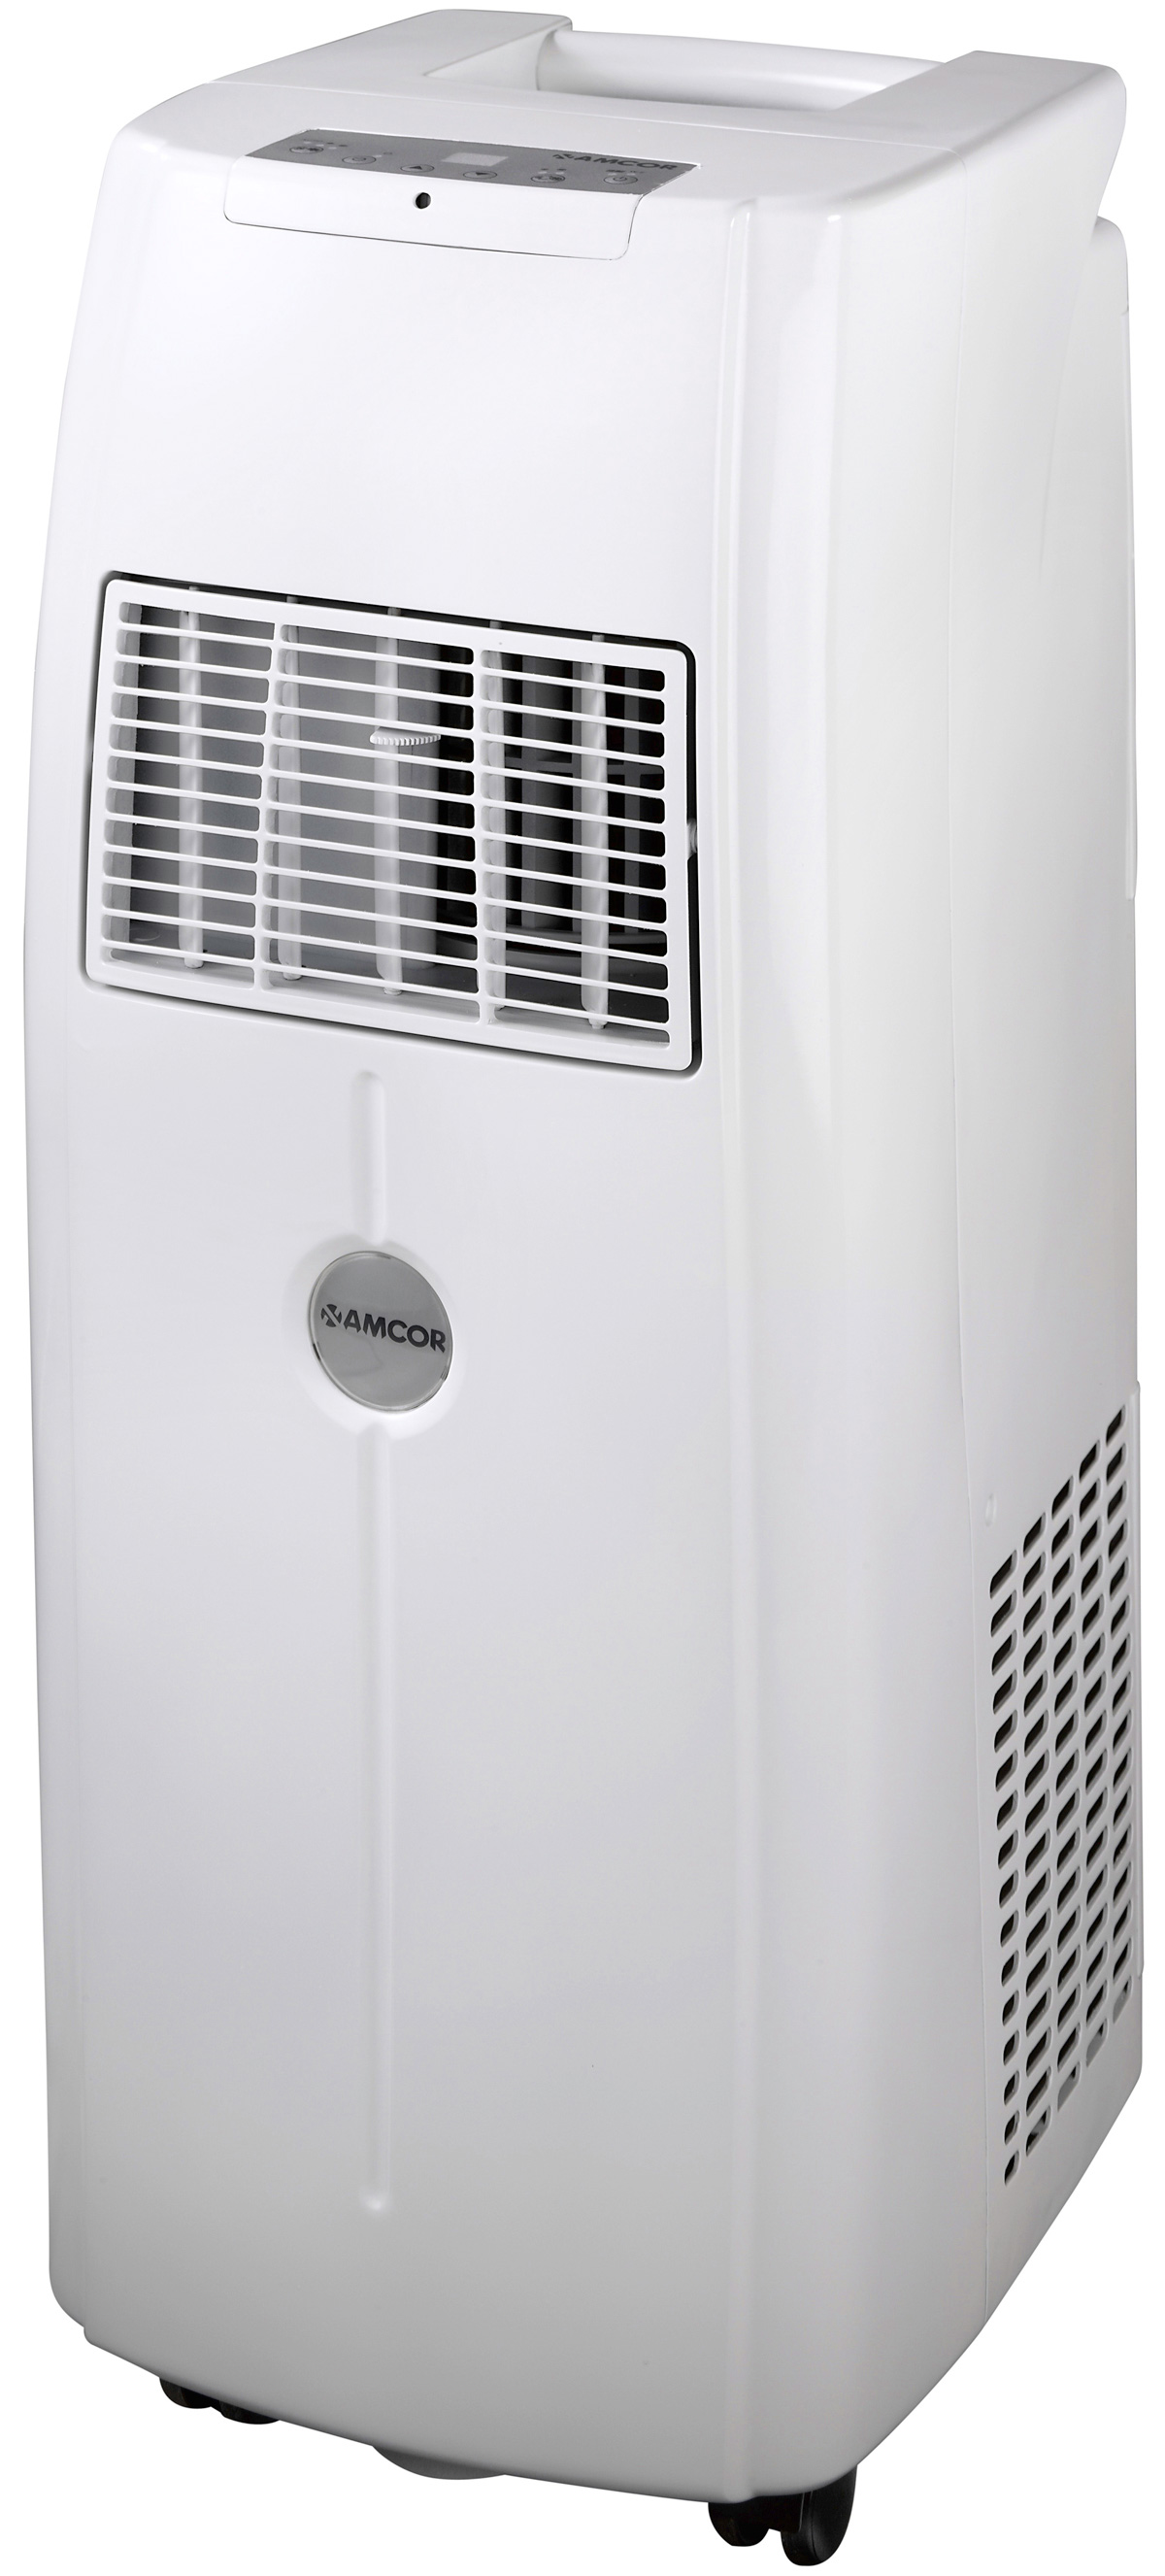 Keeping Cool With An Exciting New Air Conditioning System